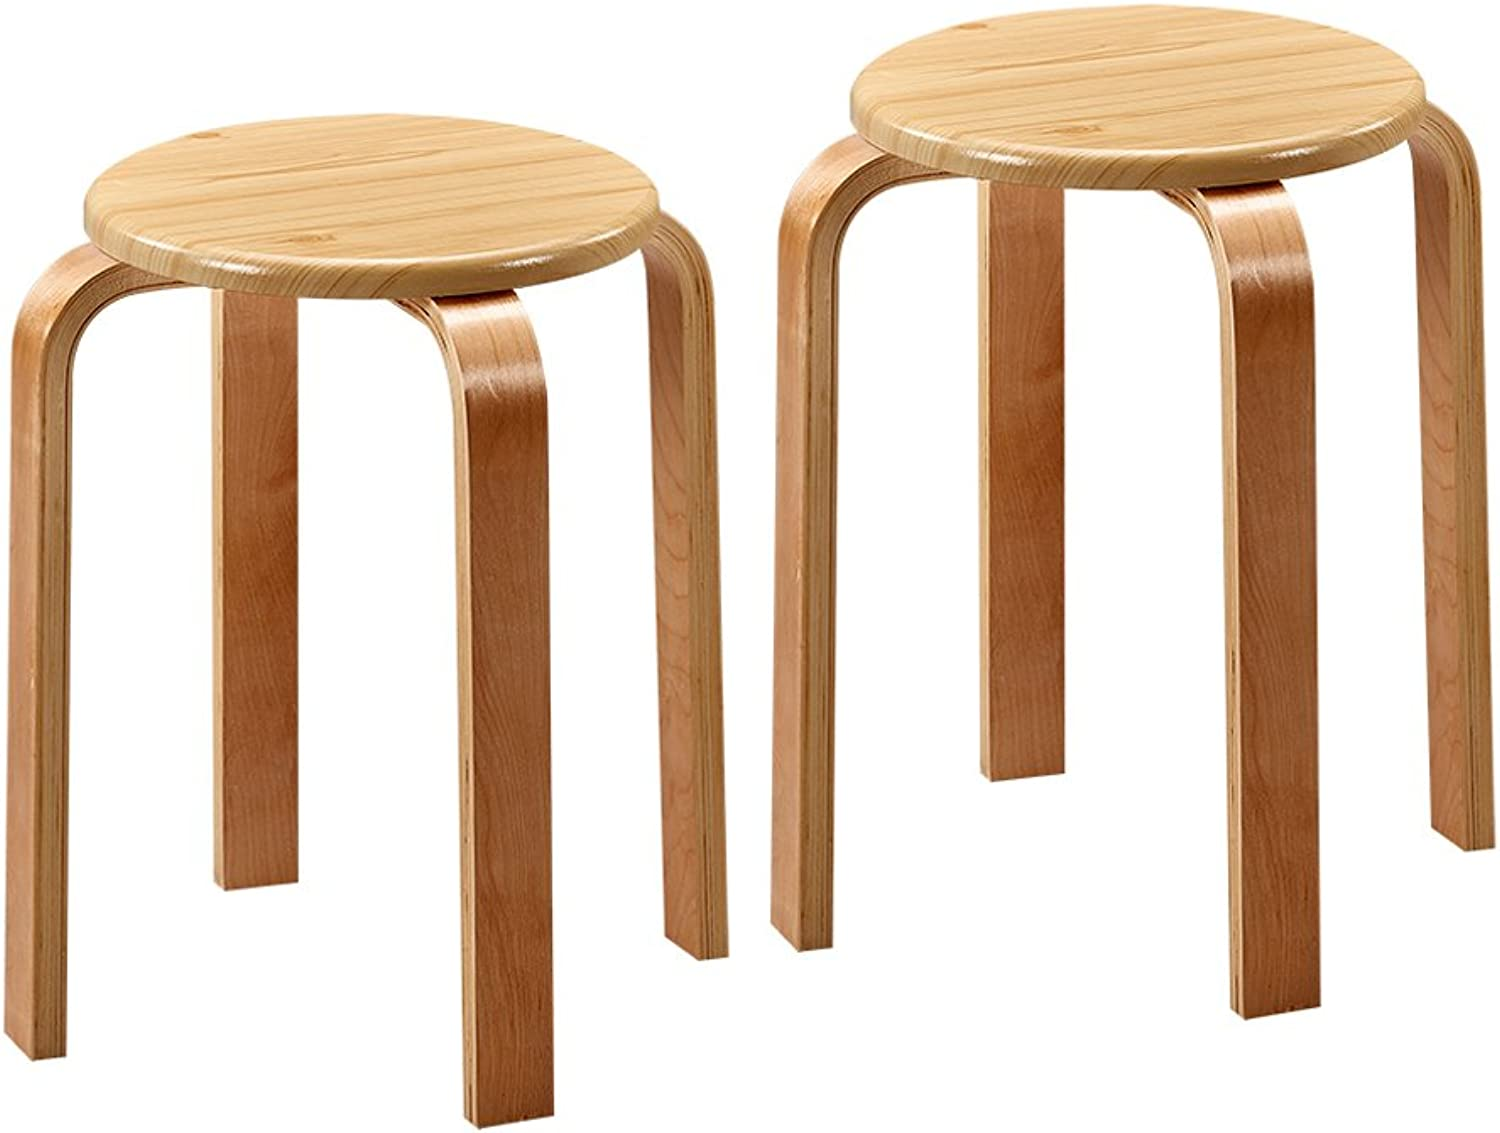 European Chair Plastic Stool, Home Fashion Simple Dining Table high Stool Bench Folding Step Stool Footstool (2 Pieces) (color   Wood)